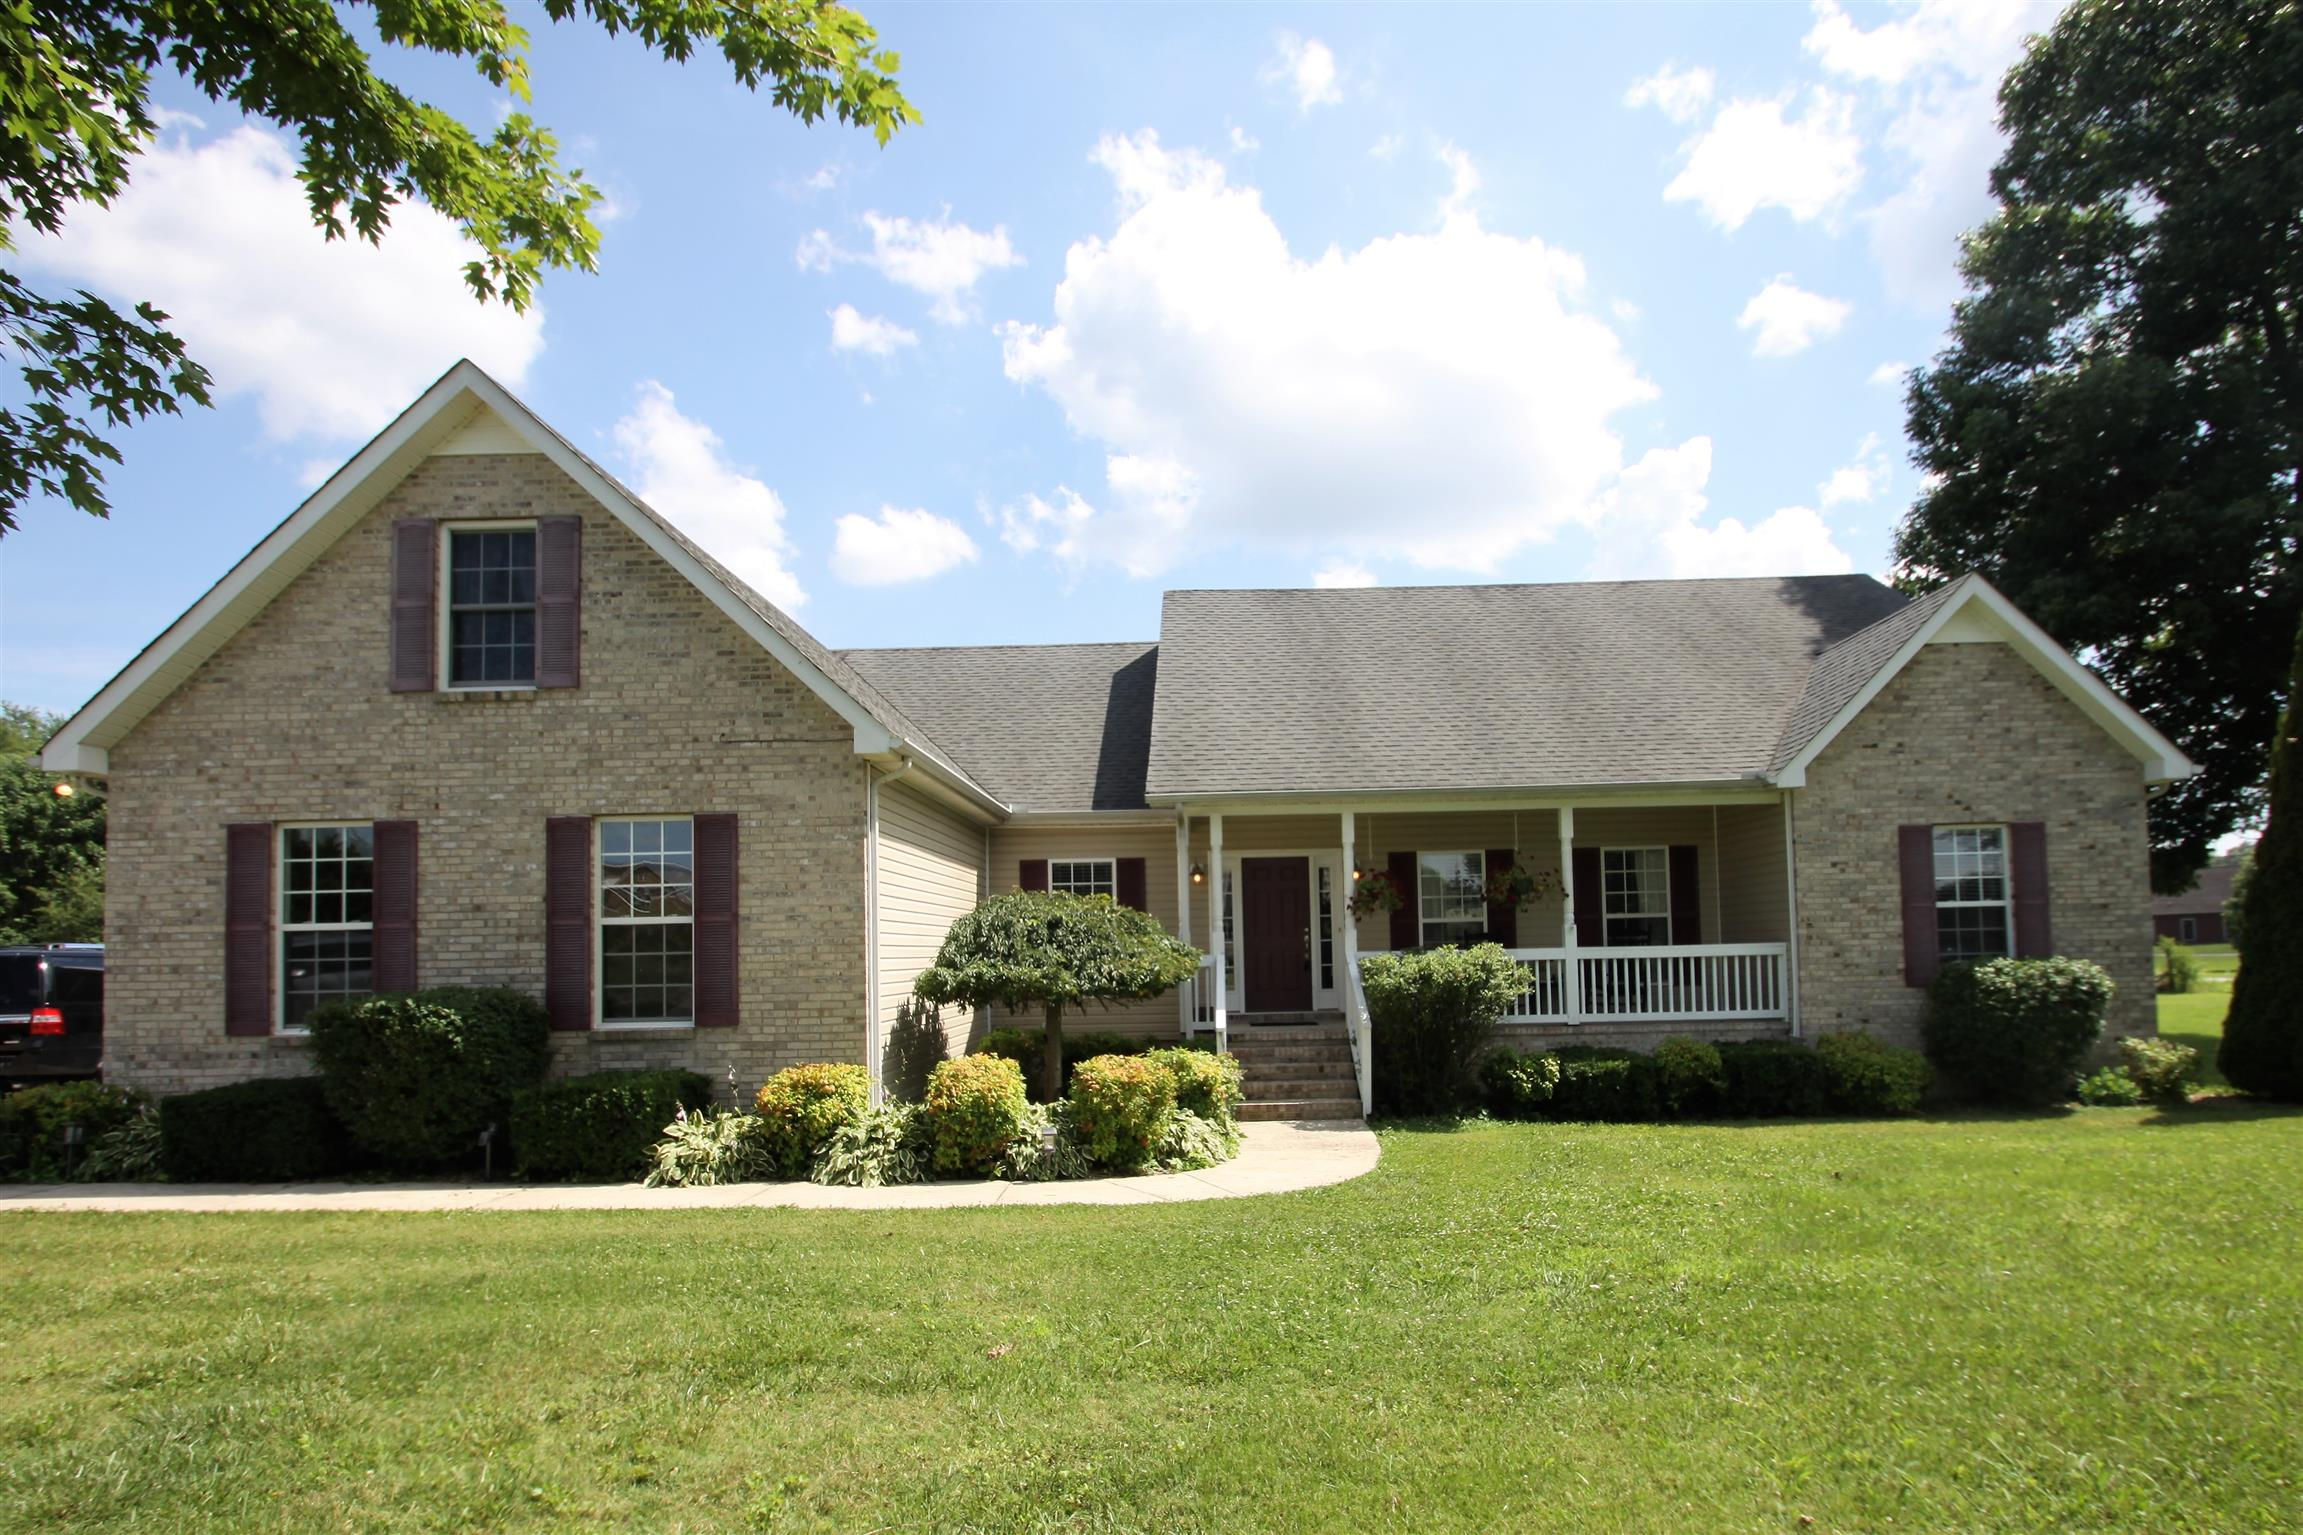 36 Kingston Ave, Hillsboro, TN 37342 - Hillsboro, TN real estate listing